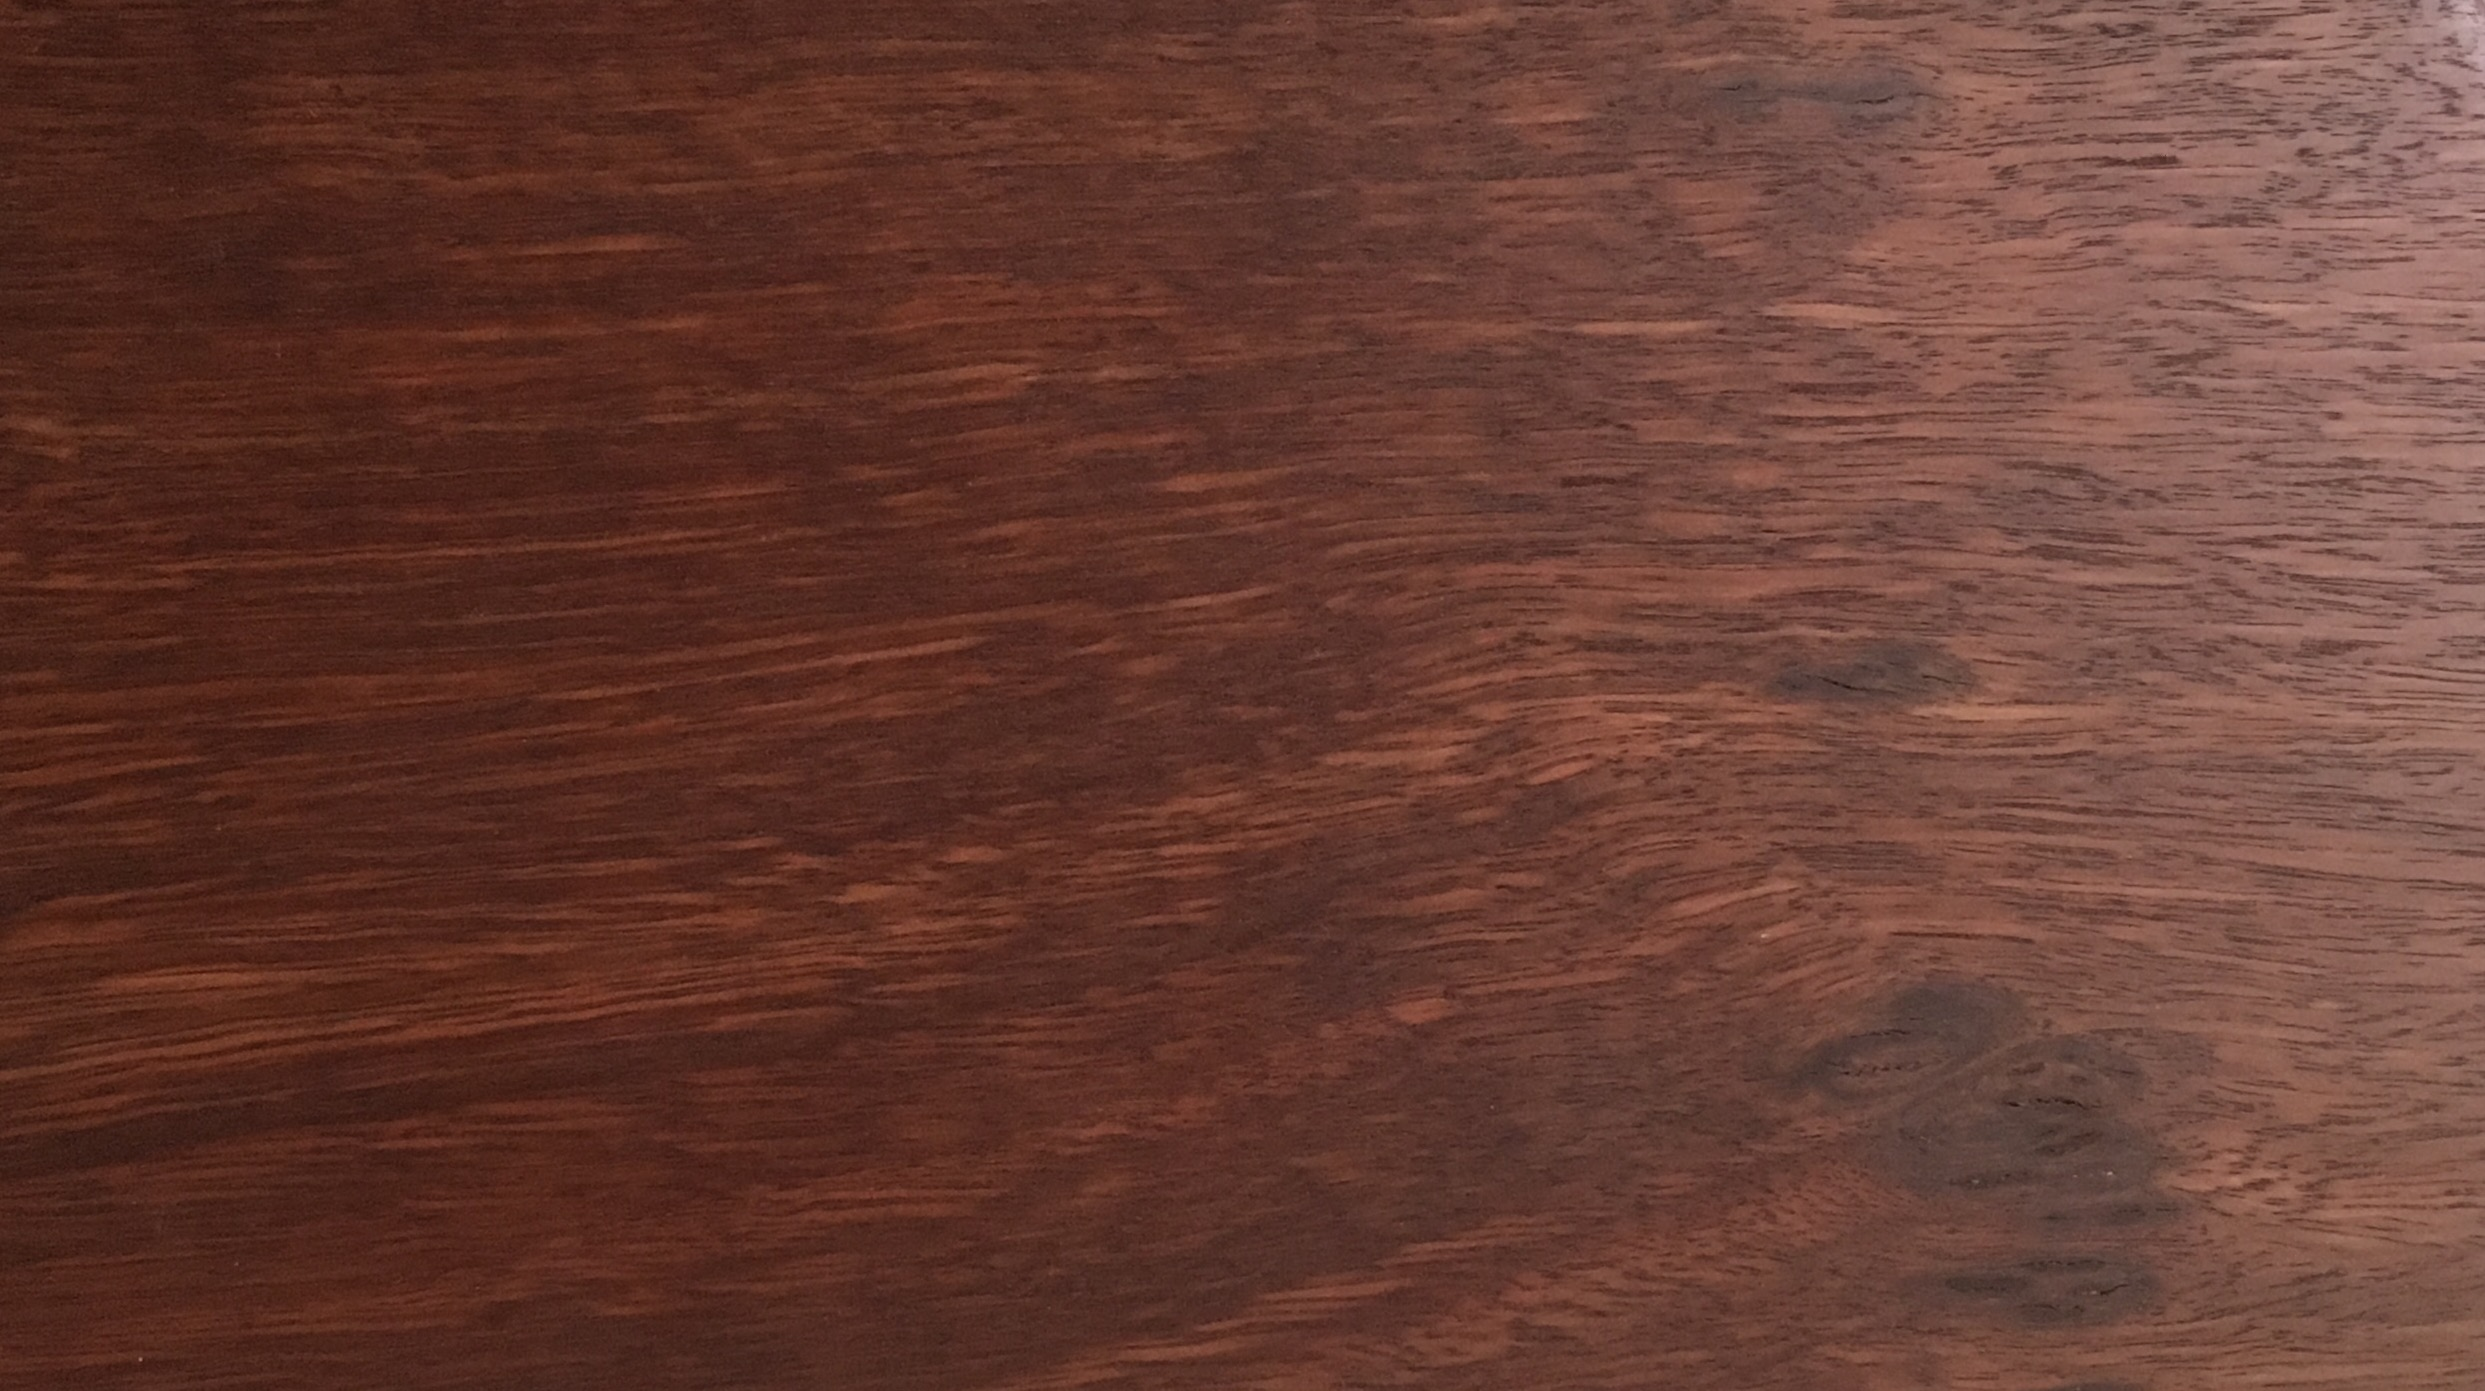 Jarrah - Eucalyptus marginataGrowing only in the south west of Western Australia, this timber ranges from deep red to light pink. Highly valued as a furniture timber, Tony makes wide use of this beautiful hardwood.